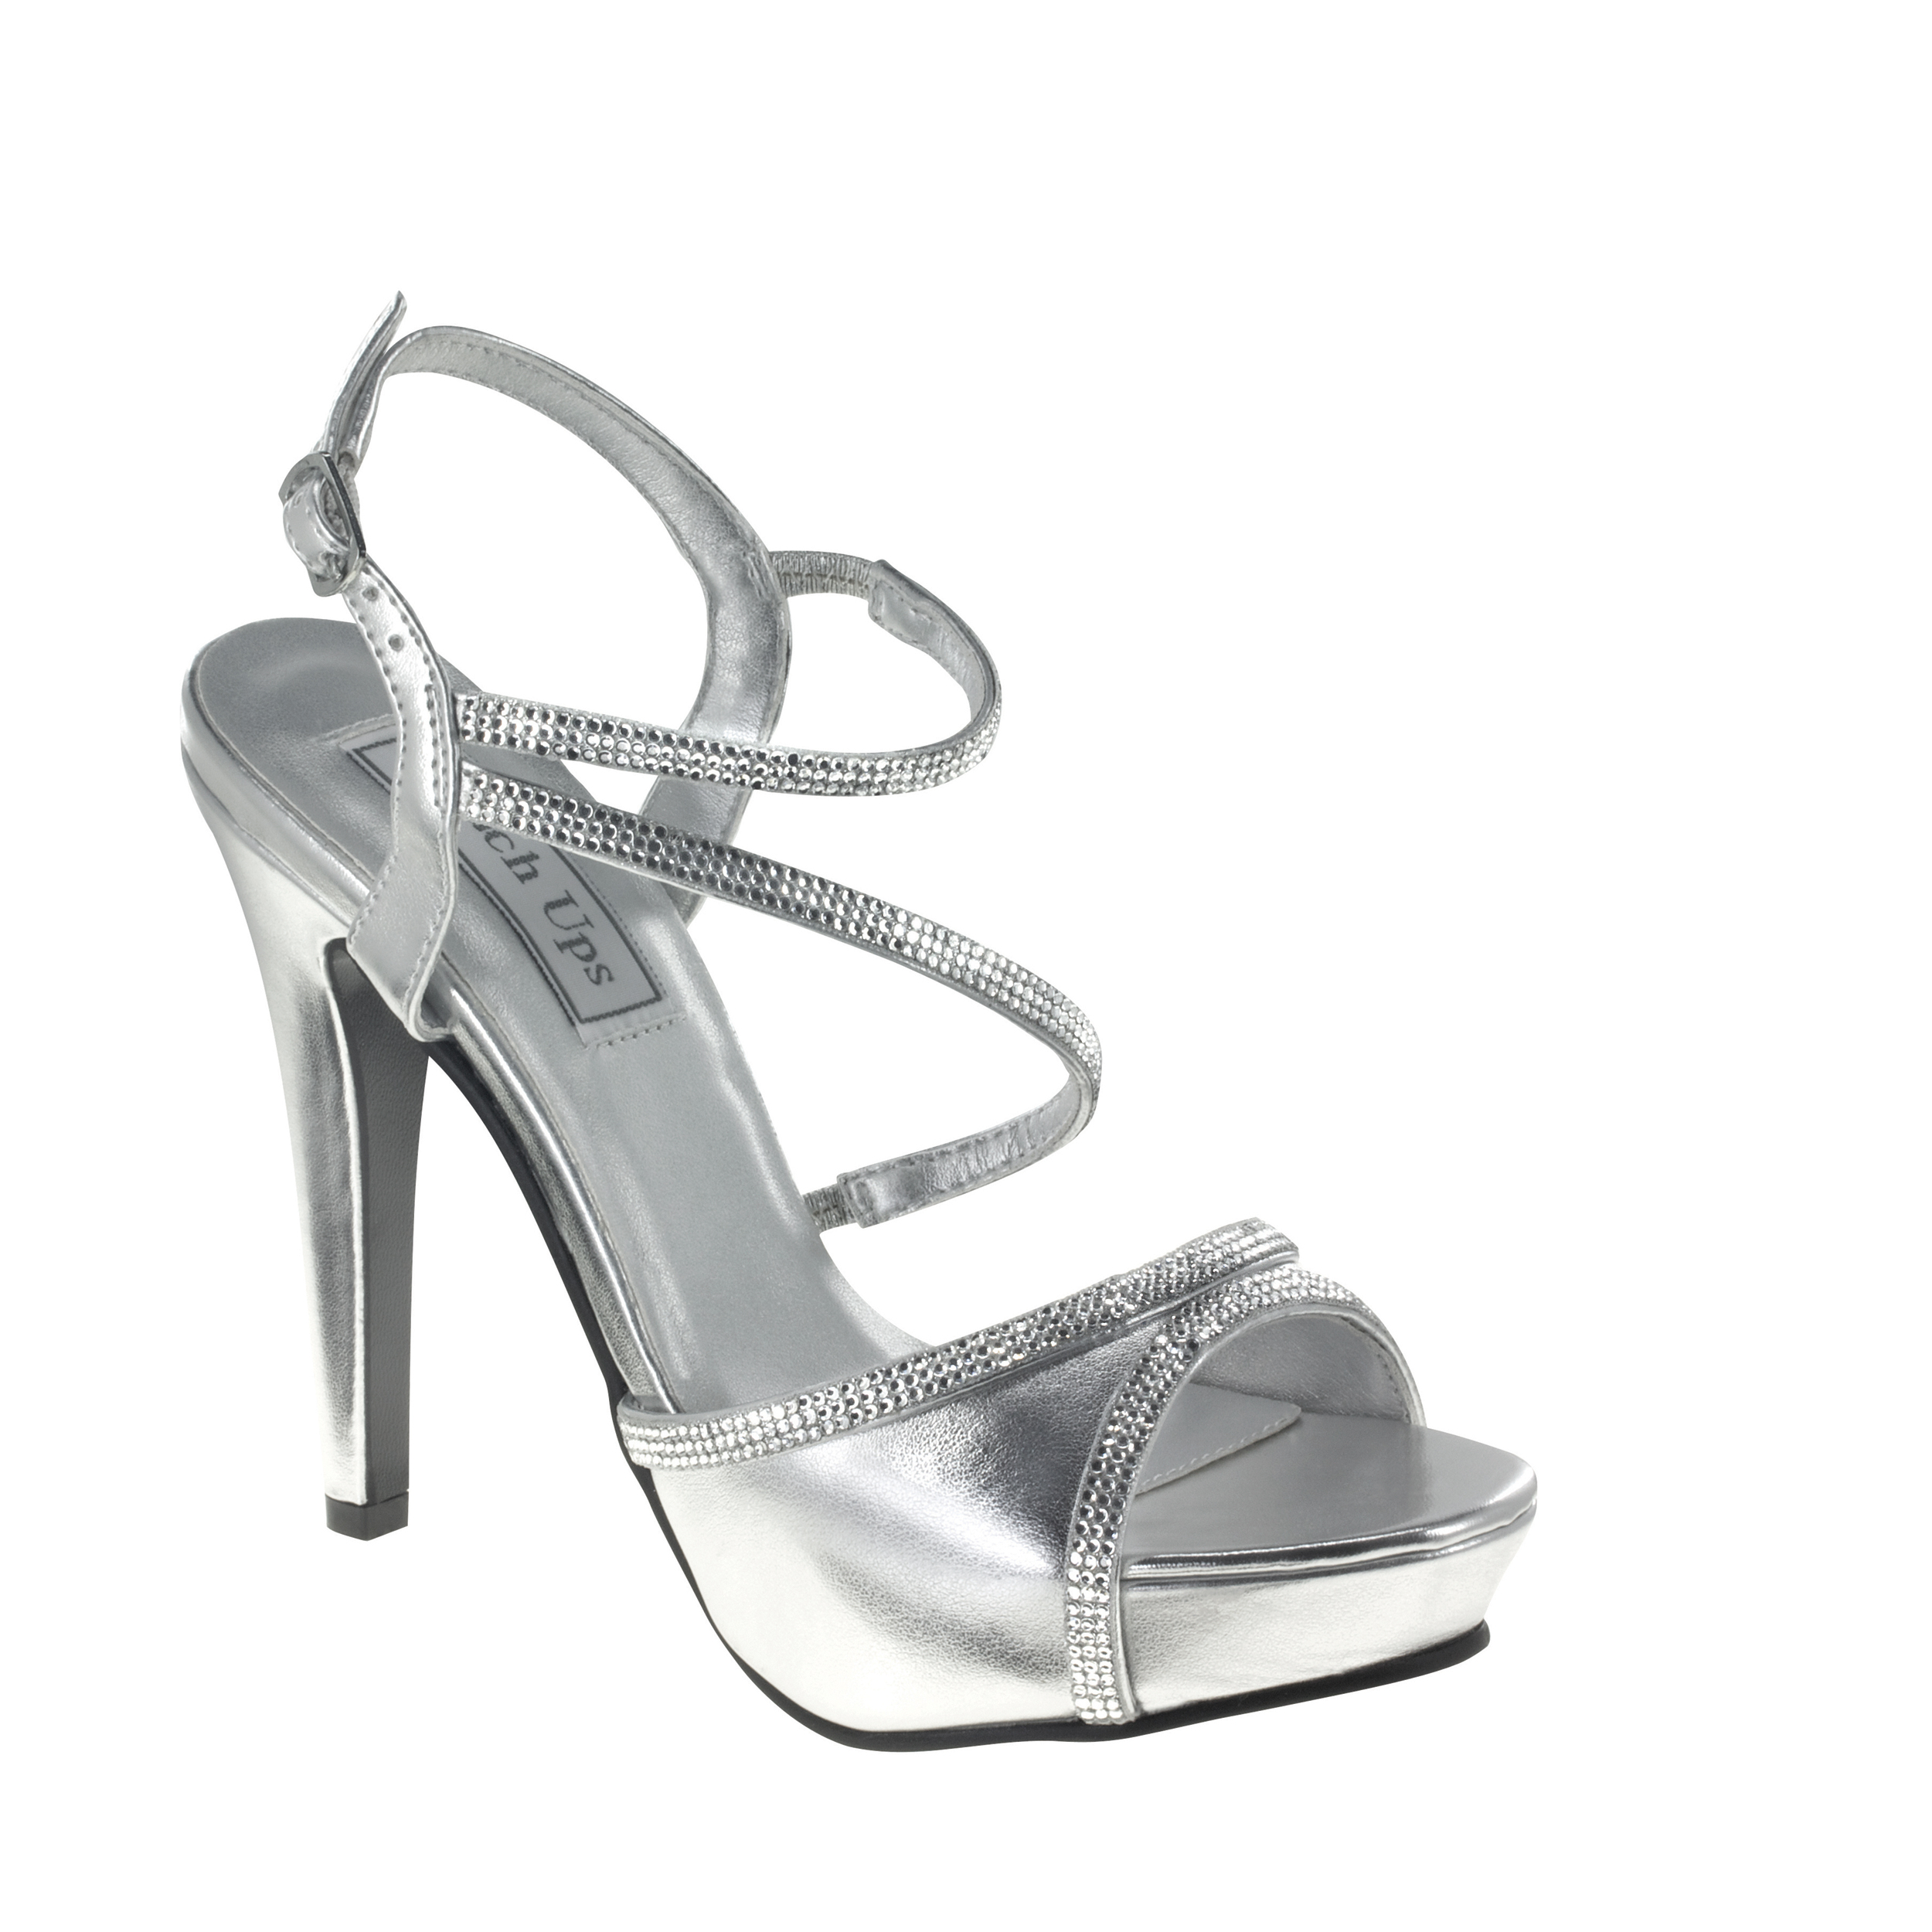 Touch Ups Womens Allie Manmade Platform Sandal,Silver,8 M US